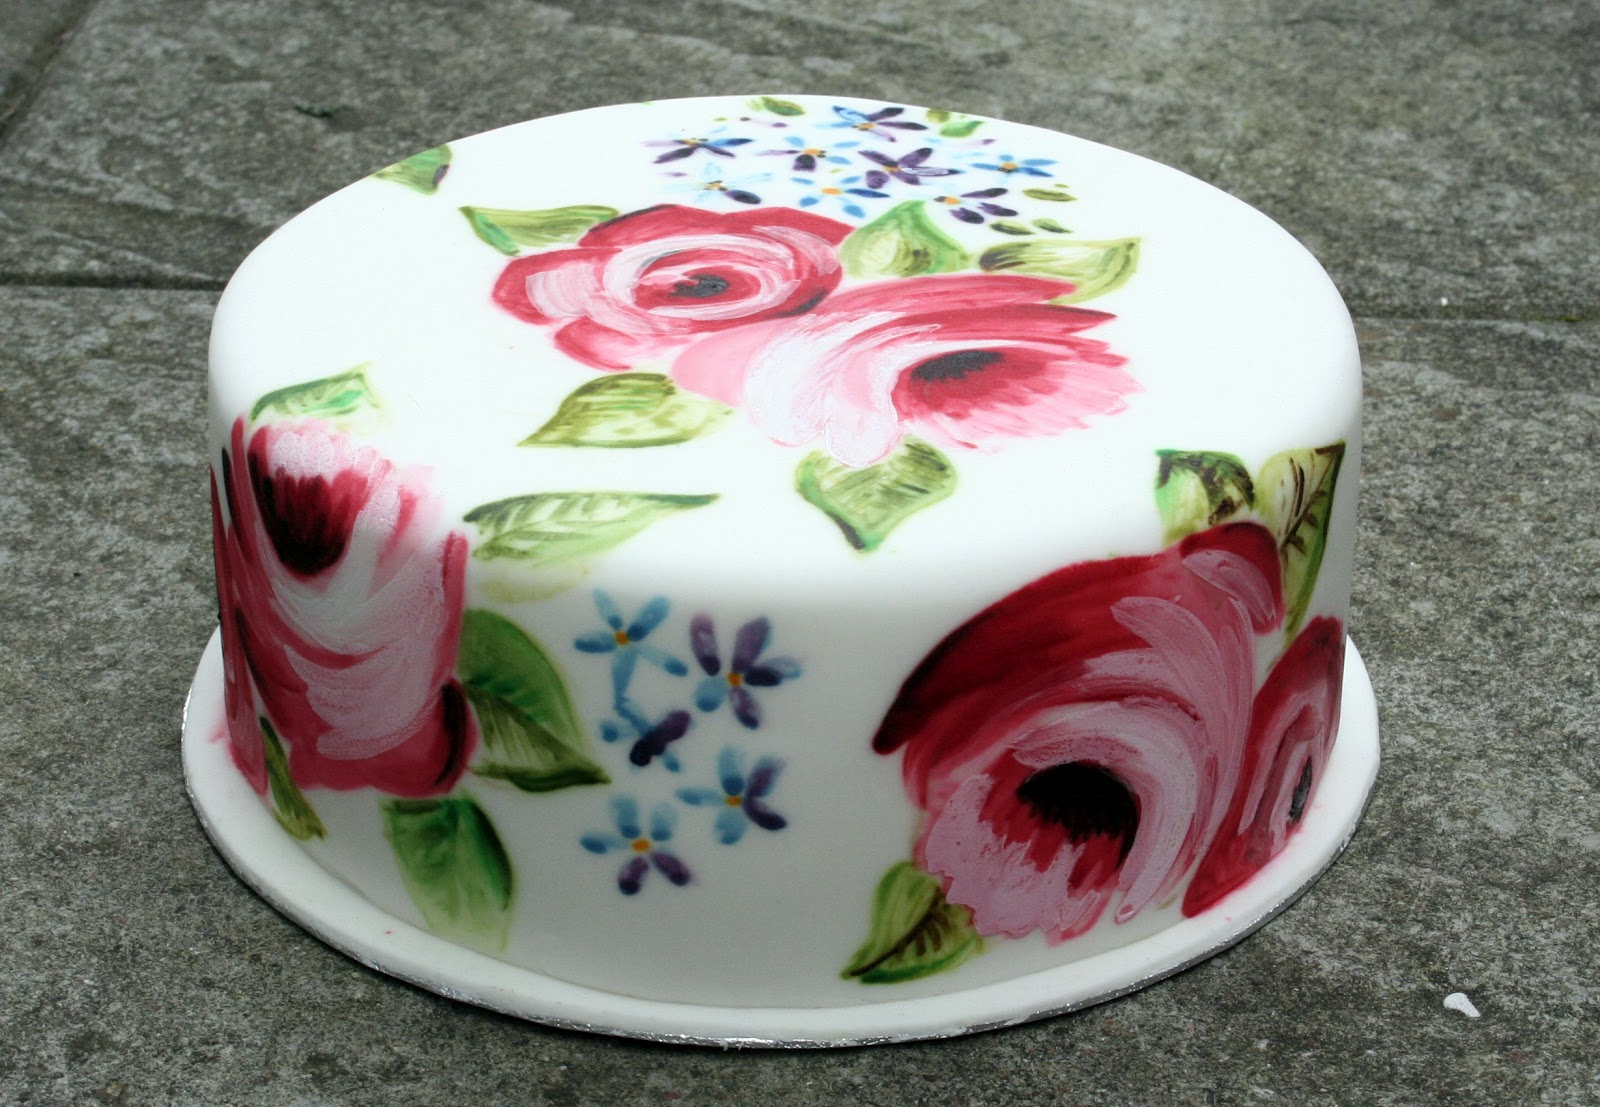 Cake Decorating Painting Icing : Dann Good Cake: Cake Painting Course